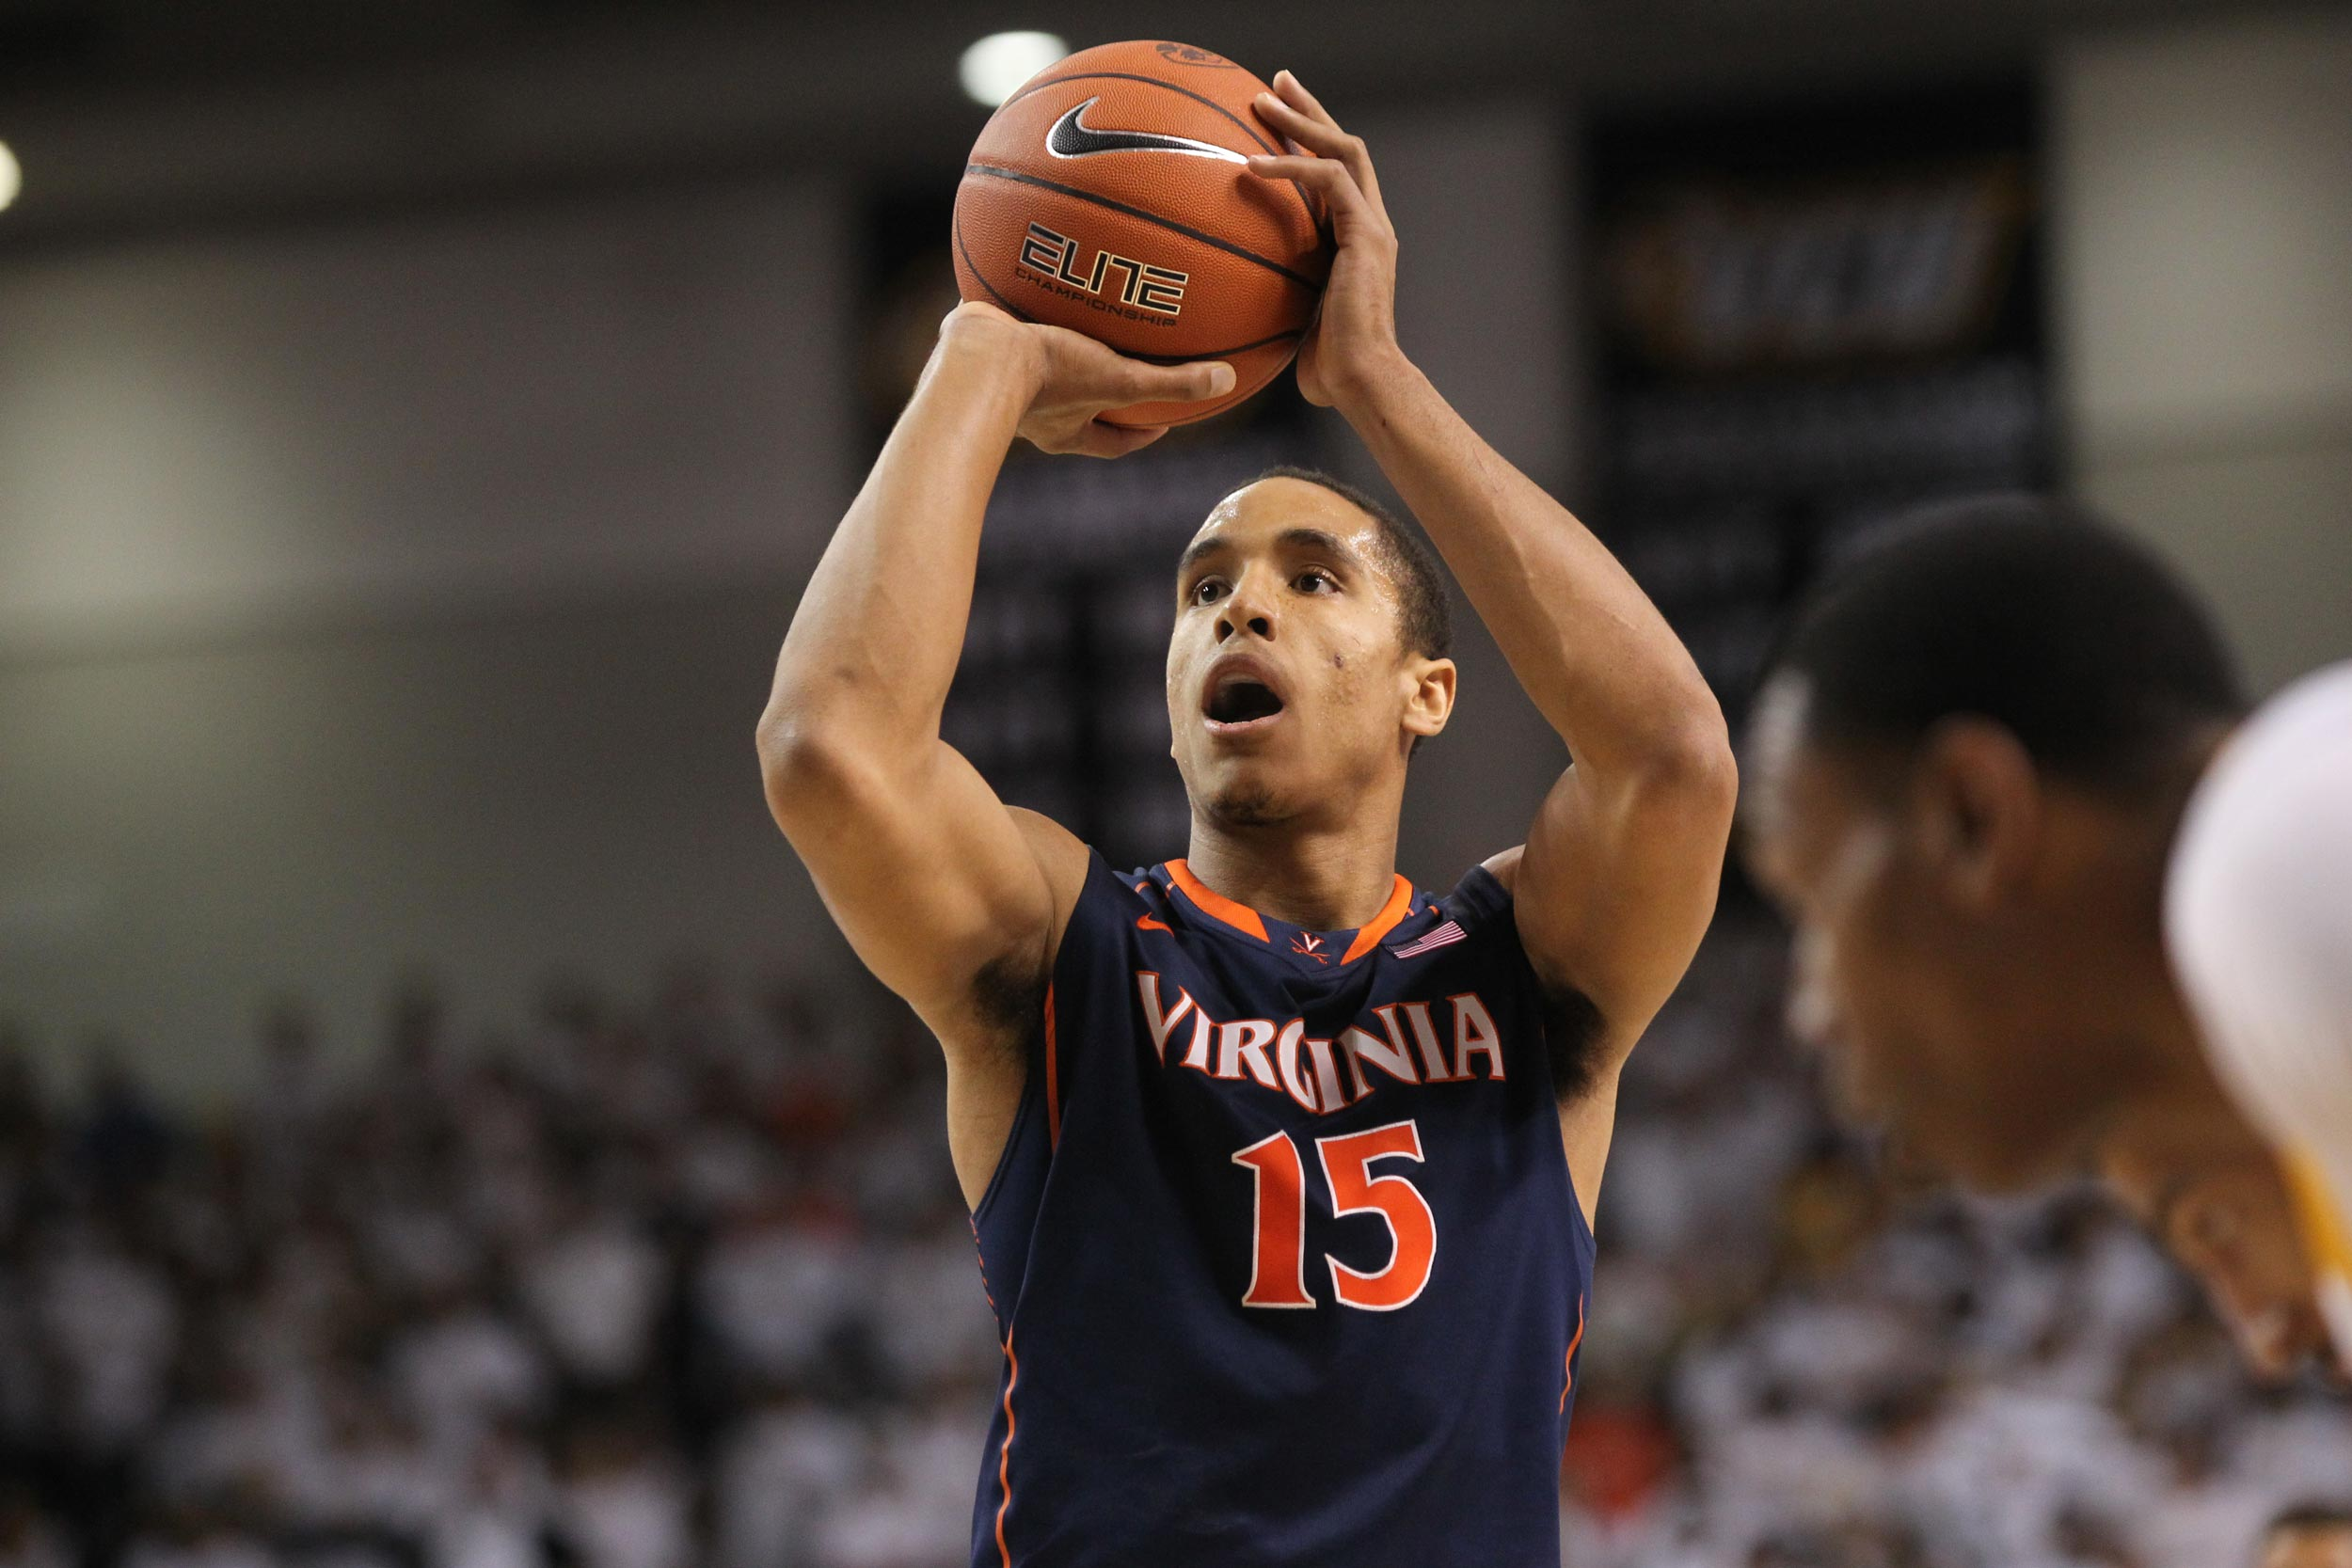 Malcom Brogdon hit nearly 90 percent of his free throws in his final season in a Cavalier uniform – and then improved in the NBA, where he is on a record pace.